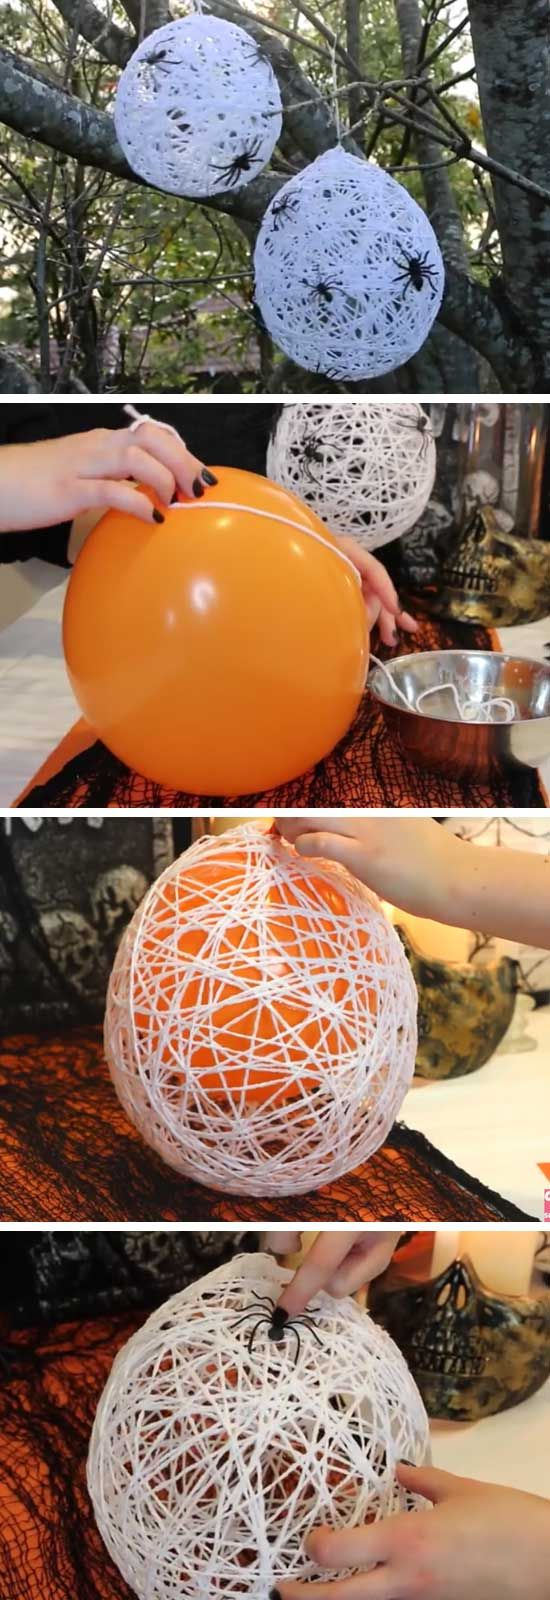 Balloon Spider Web.